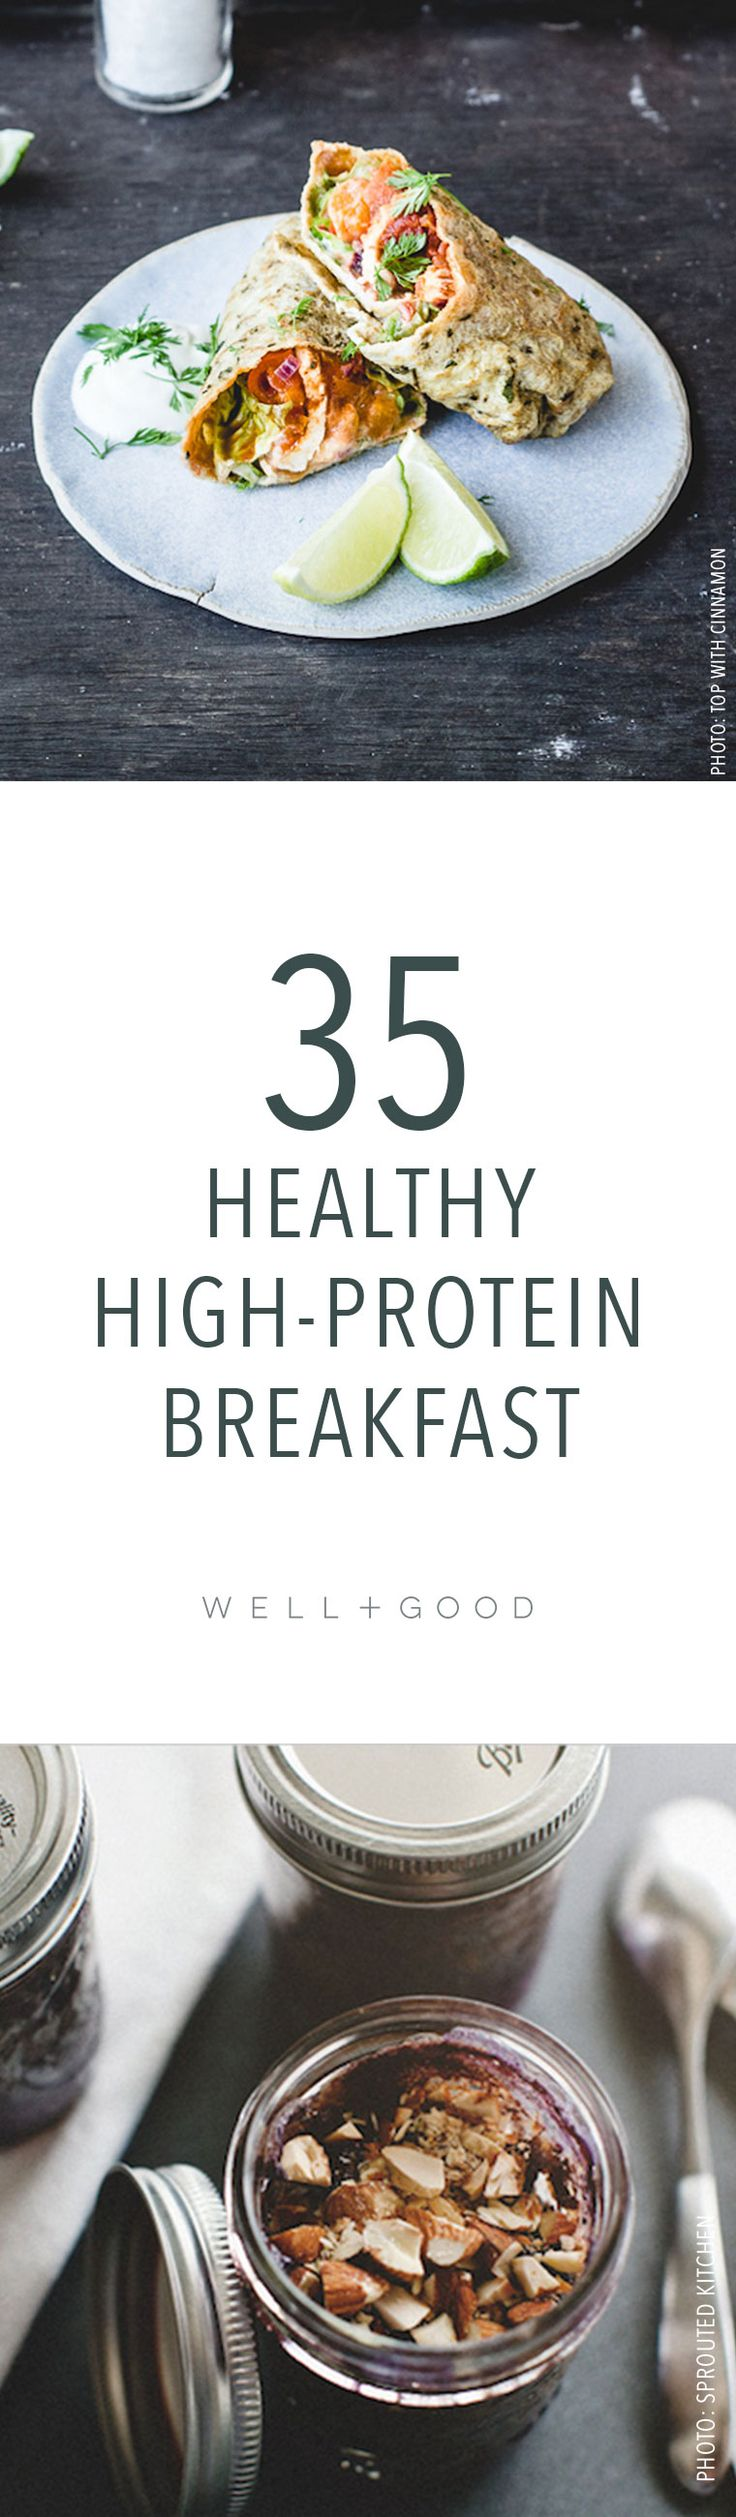 Healthy high-protein breakfast options to make